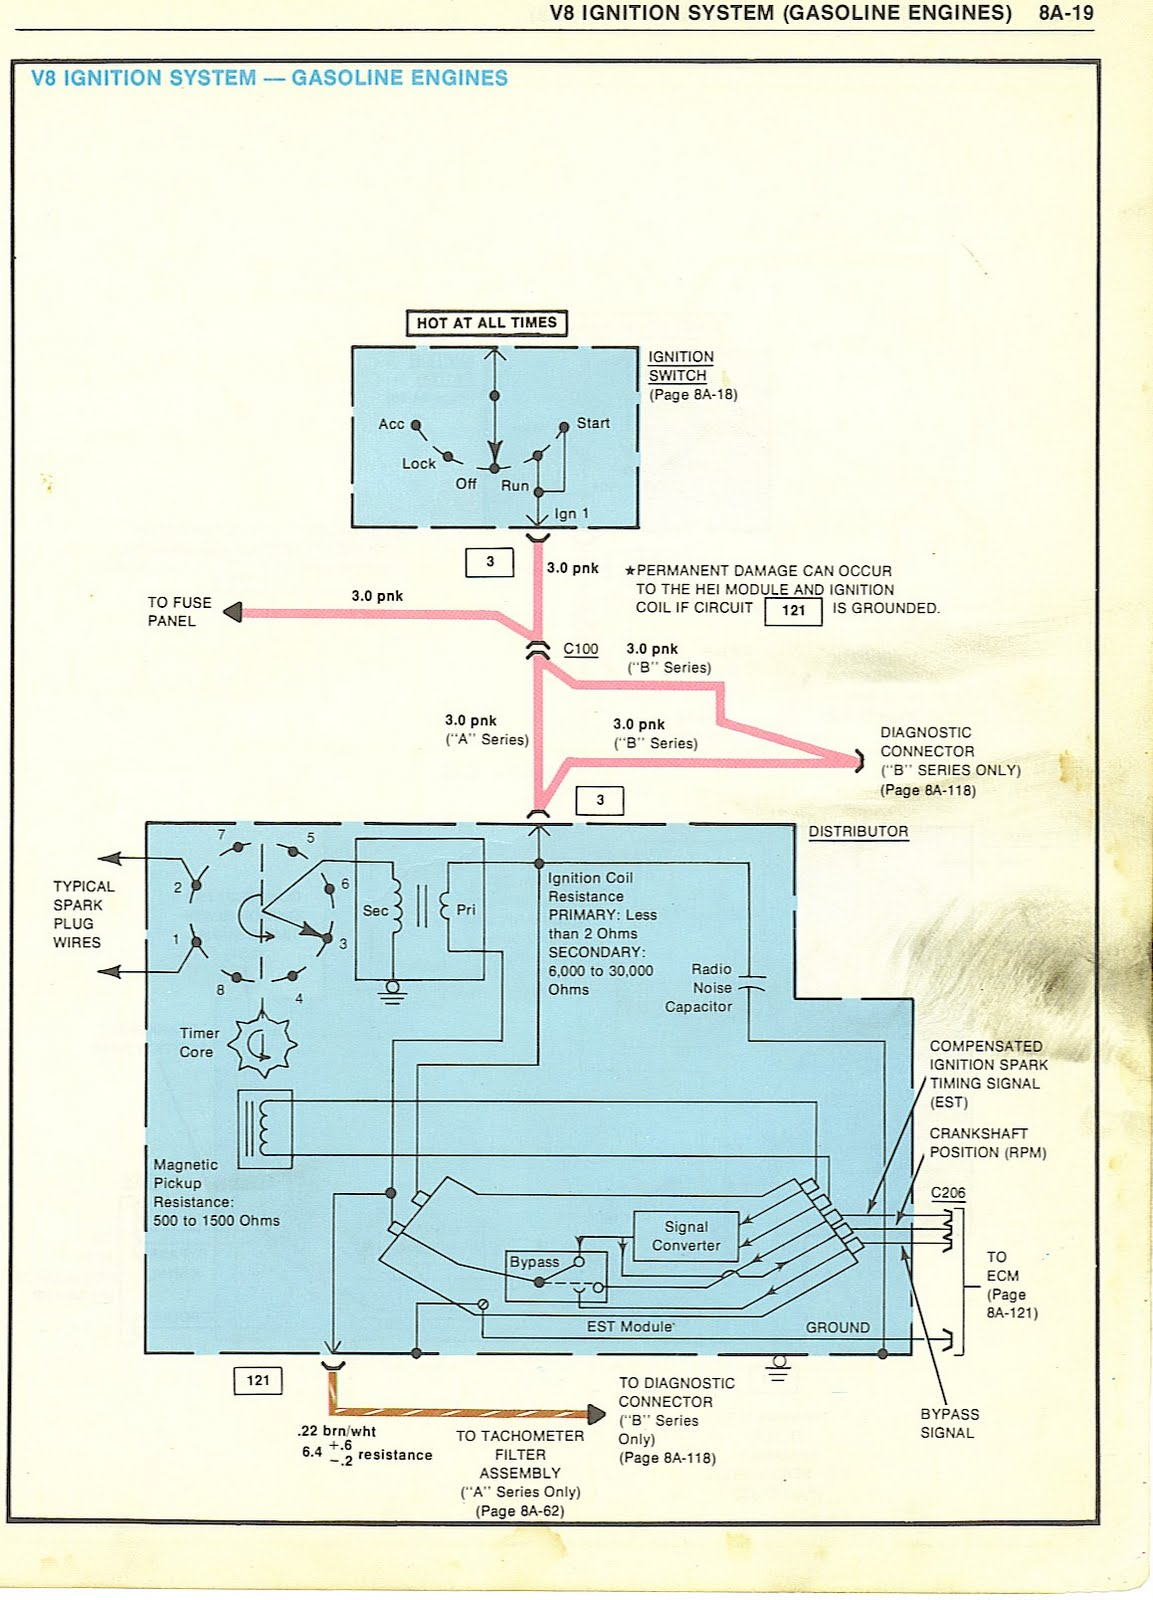 chevrolet ignition wiring diagram chevrolet wiring diagrams v8 ignition system bu wiring diagram chevrolet